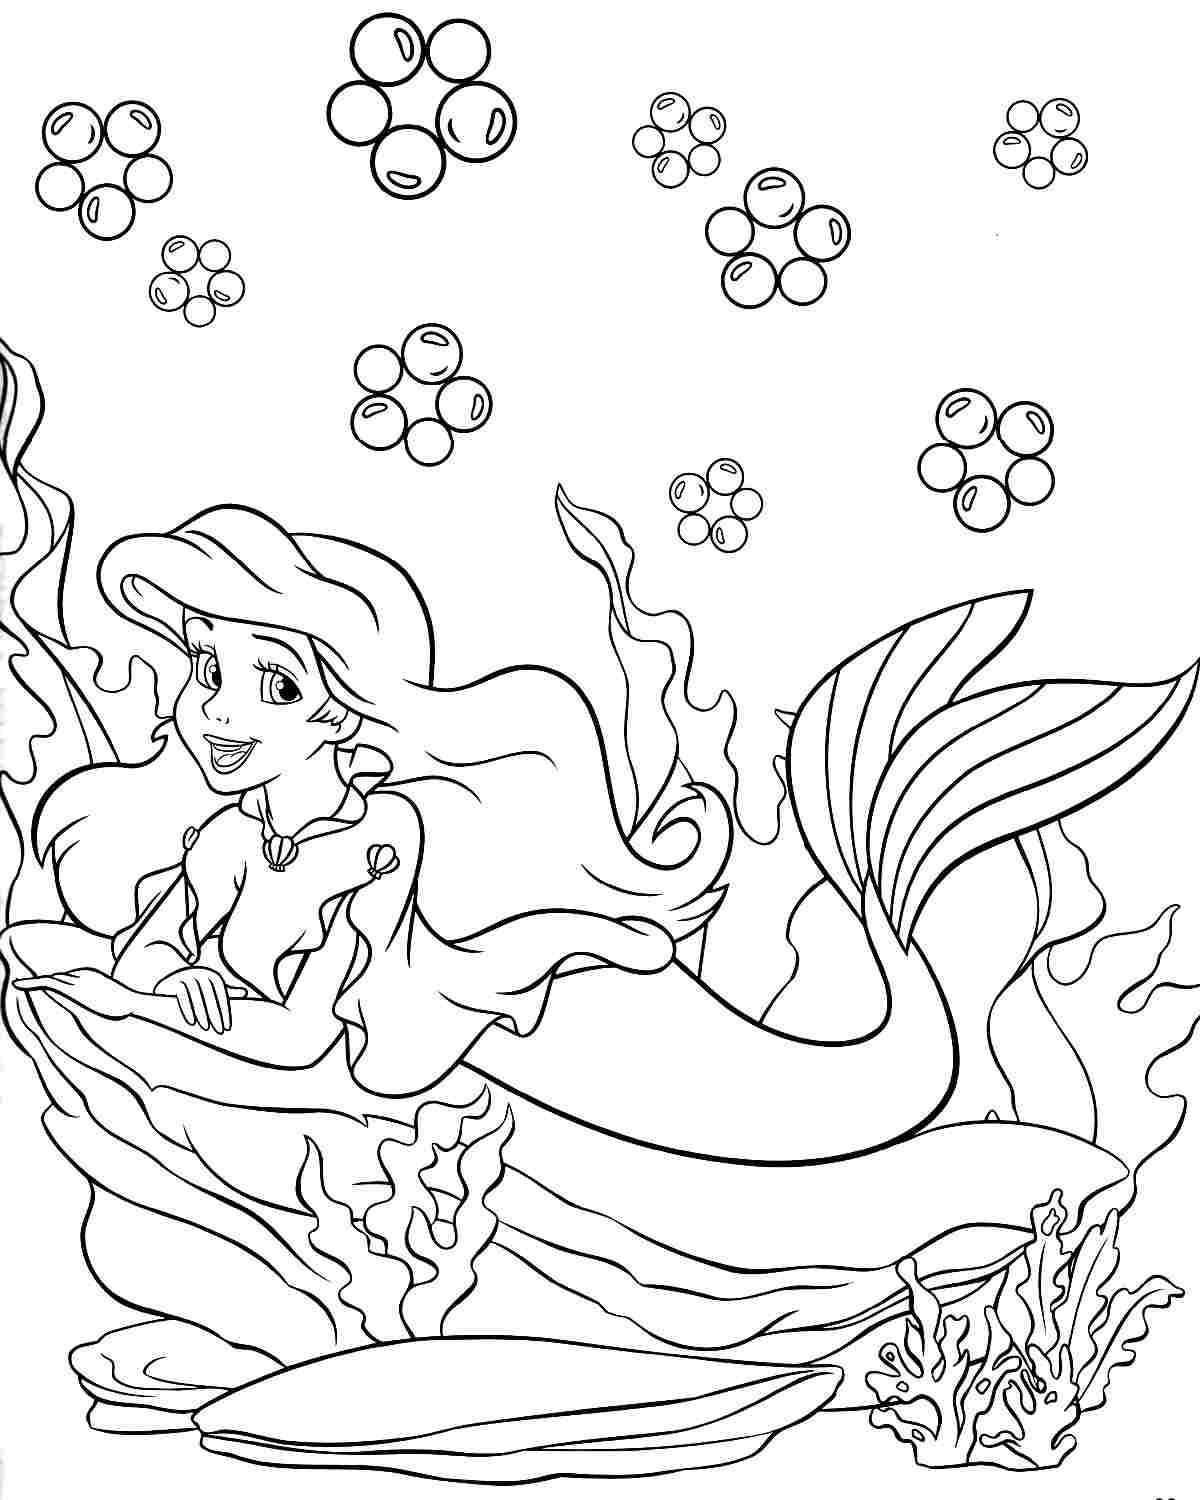 Free Disney Christmas Colouring Sheets With Pin By Yooper Girl On Color Sea Mermaid Pinterest Coloring